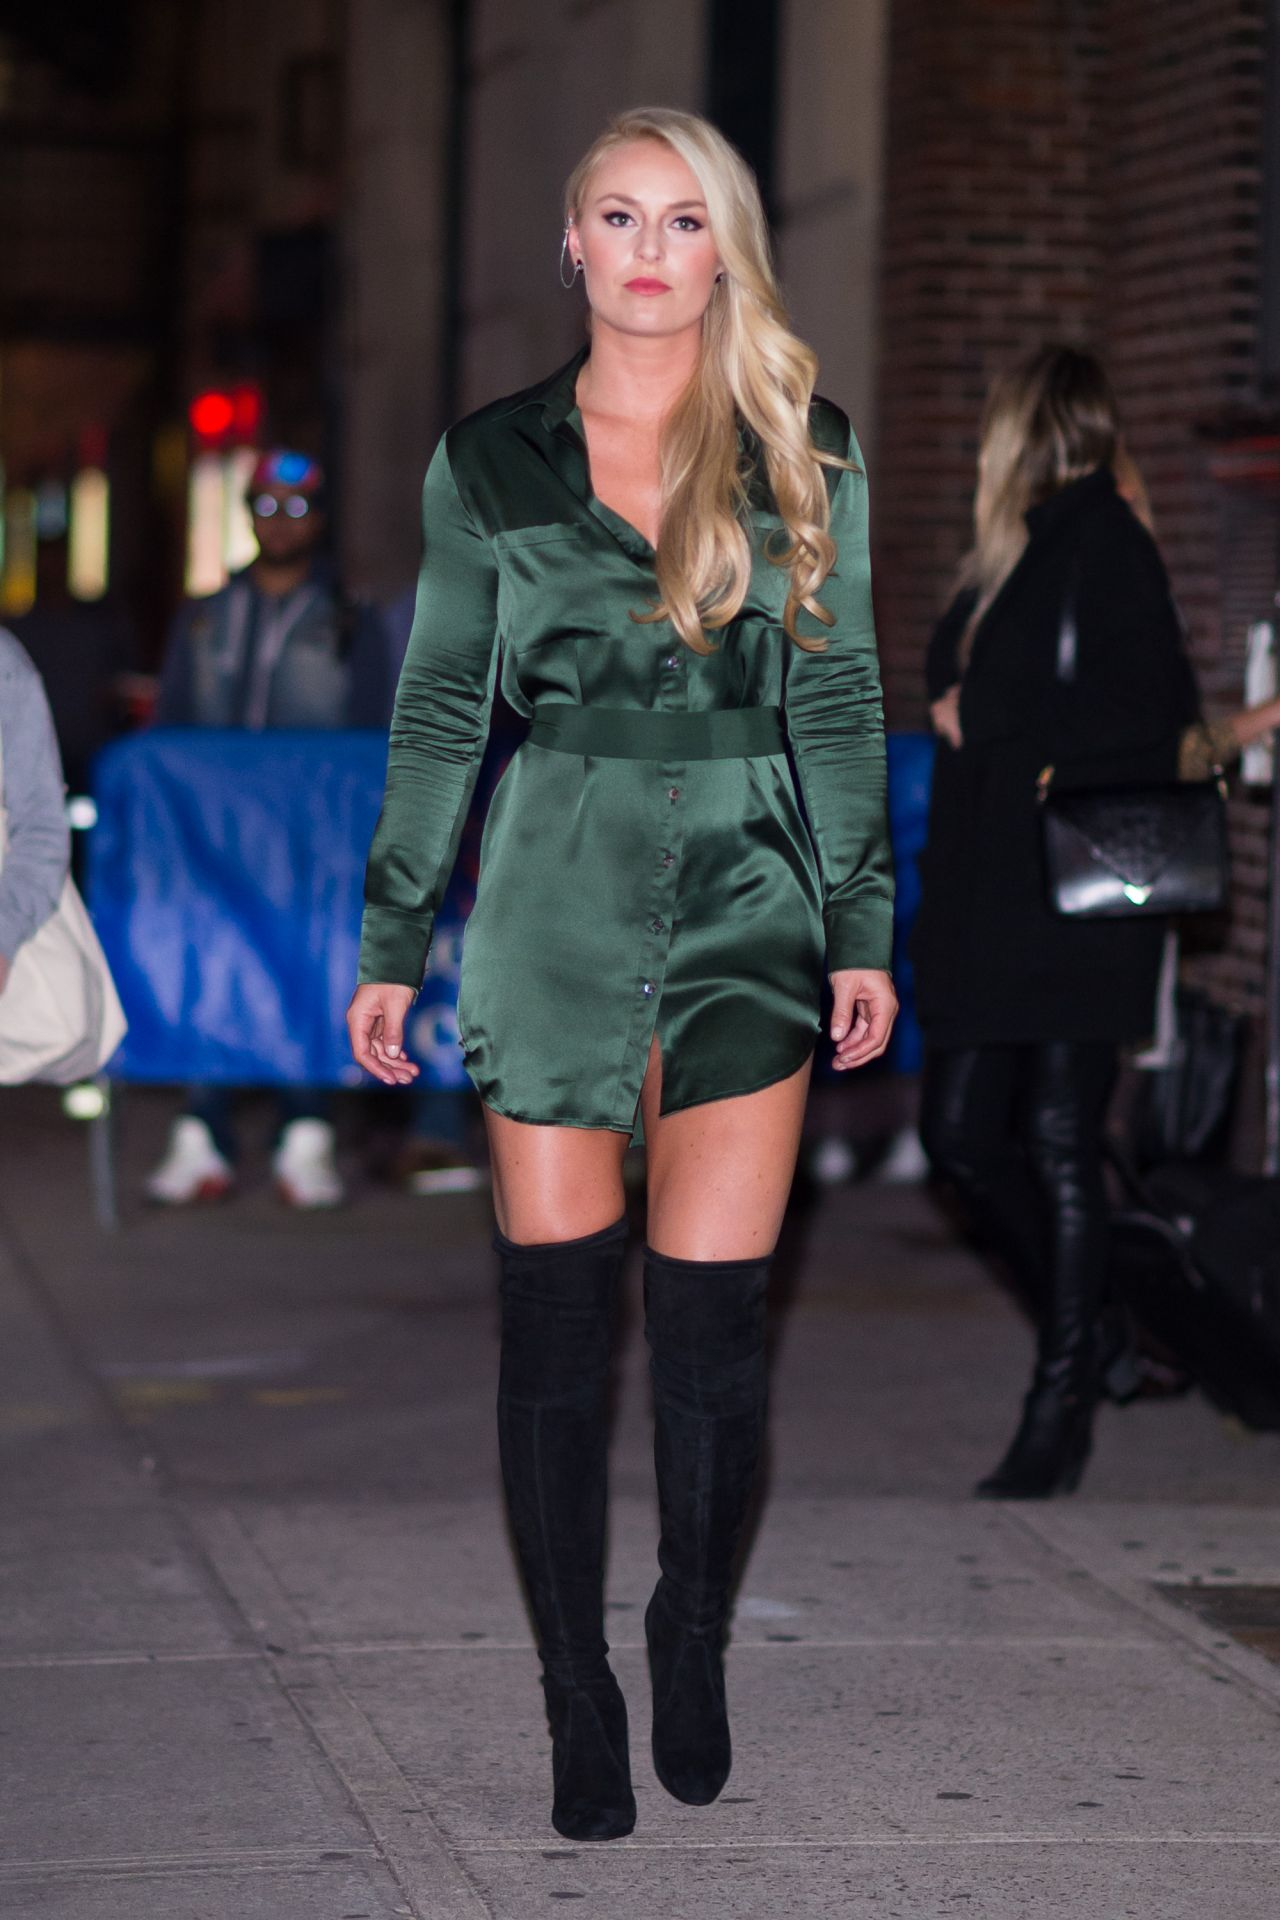 Lindsey Vonn Short Dress and Hooker Boots